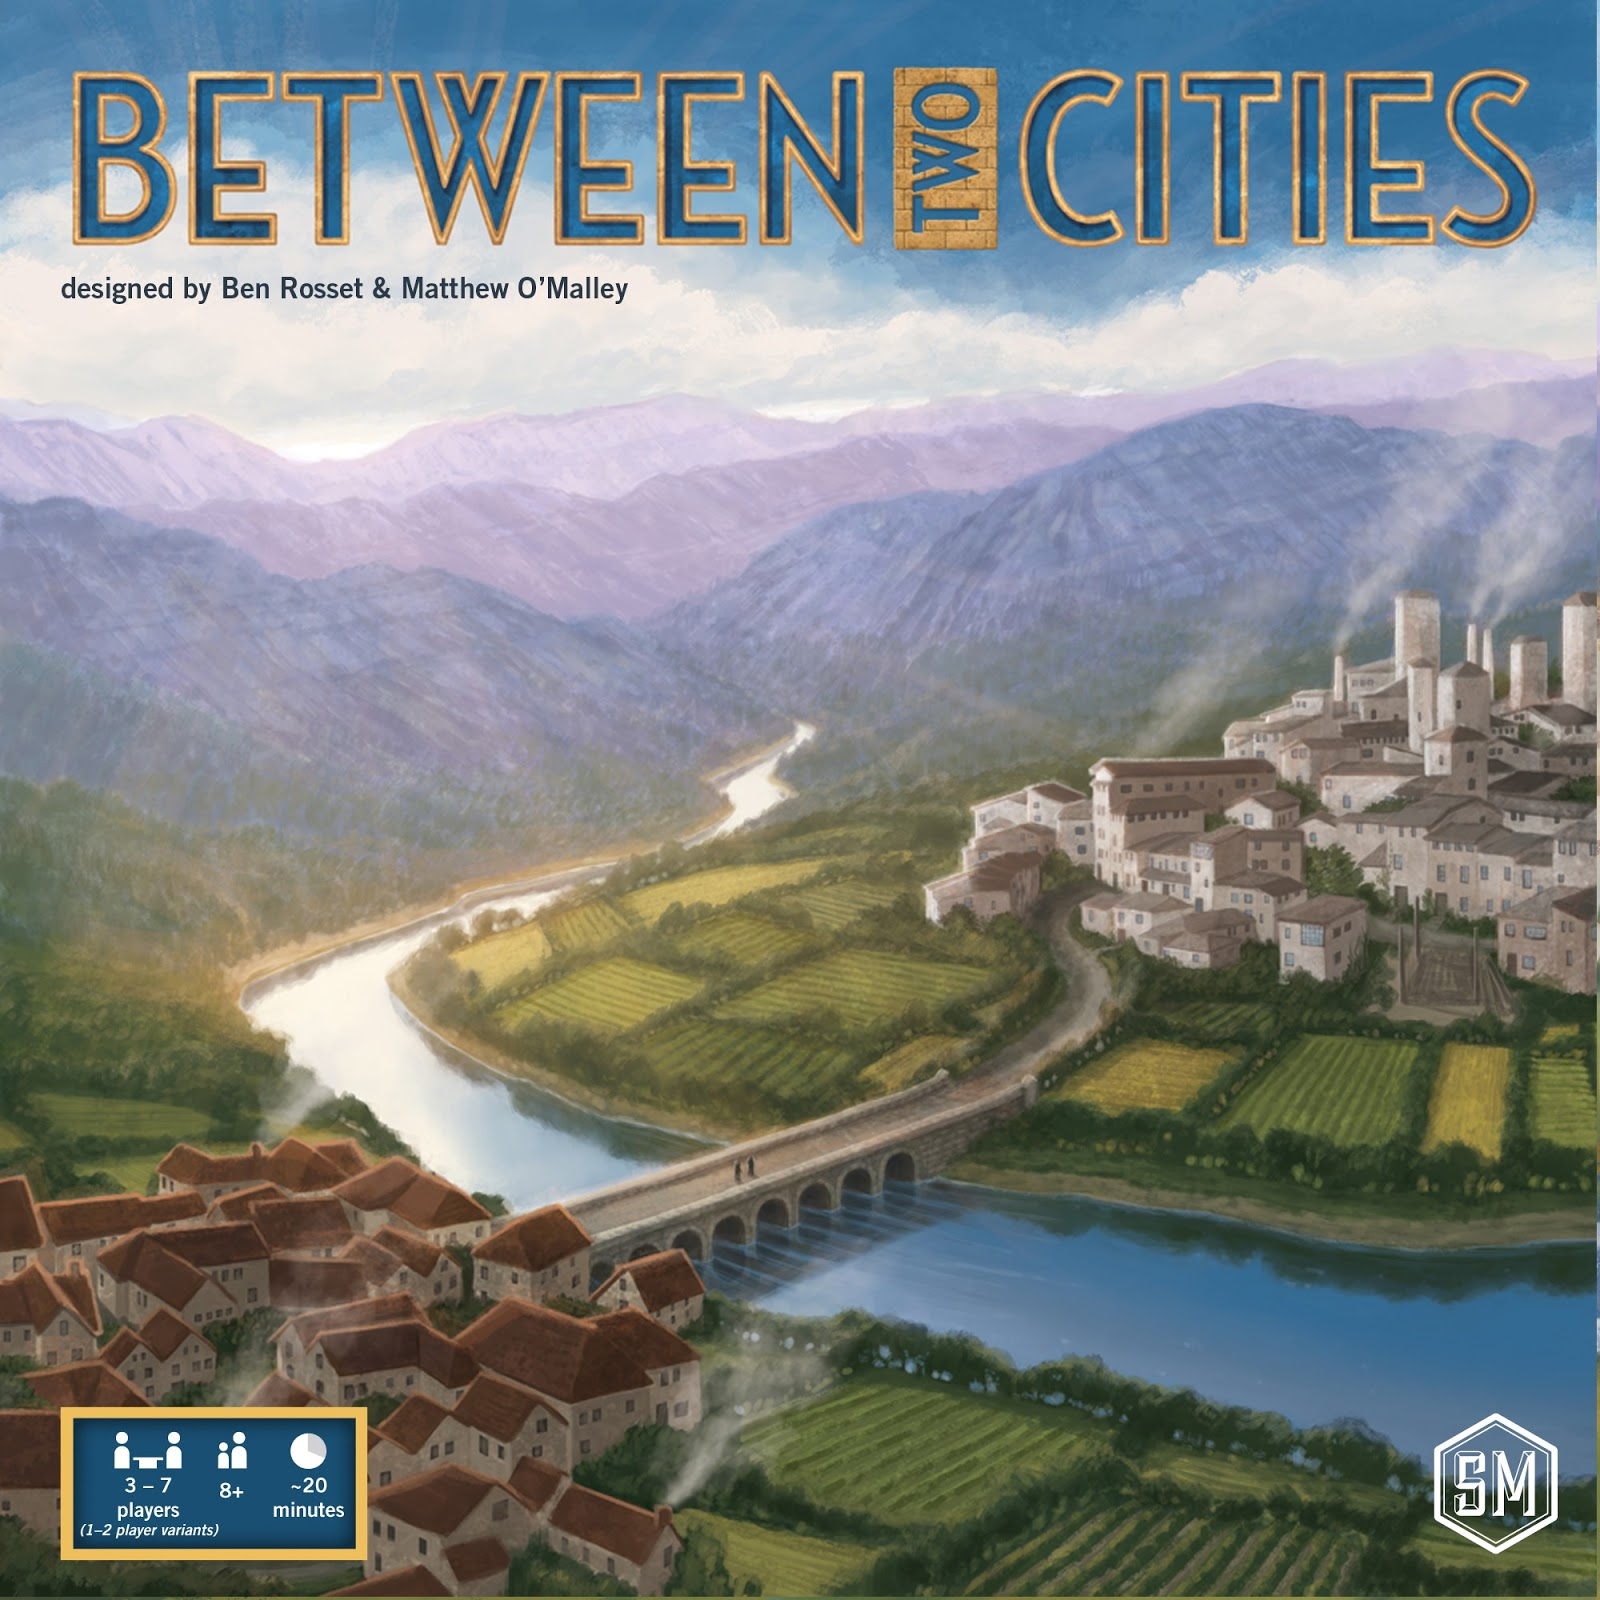 Between Two Cities, un juego de mesa para construir a dos manos